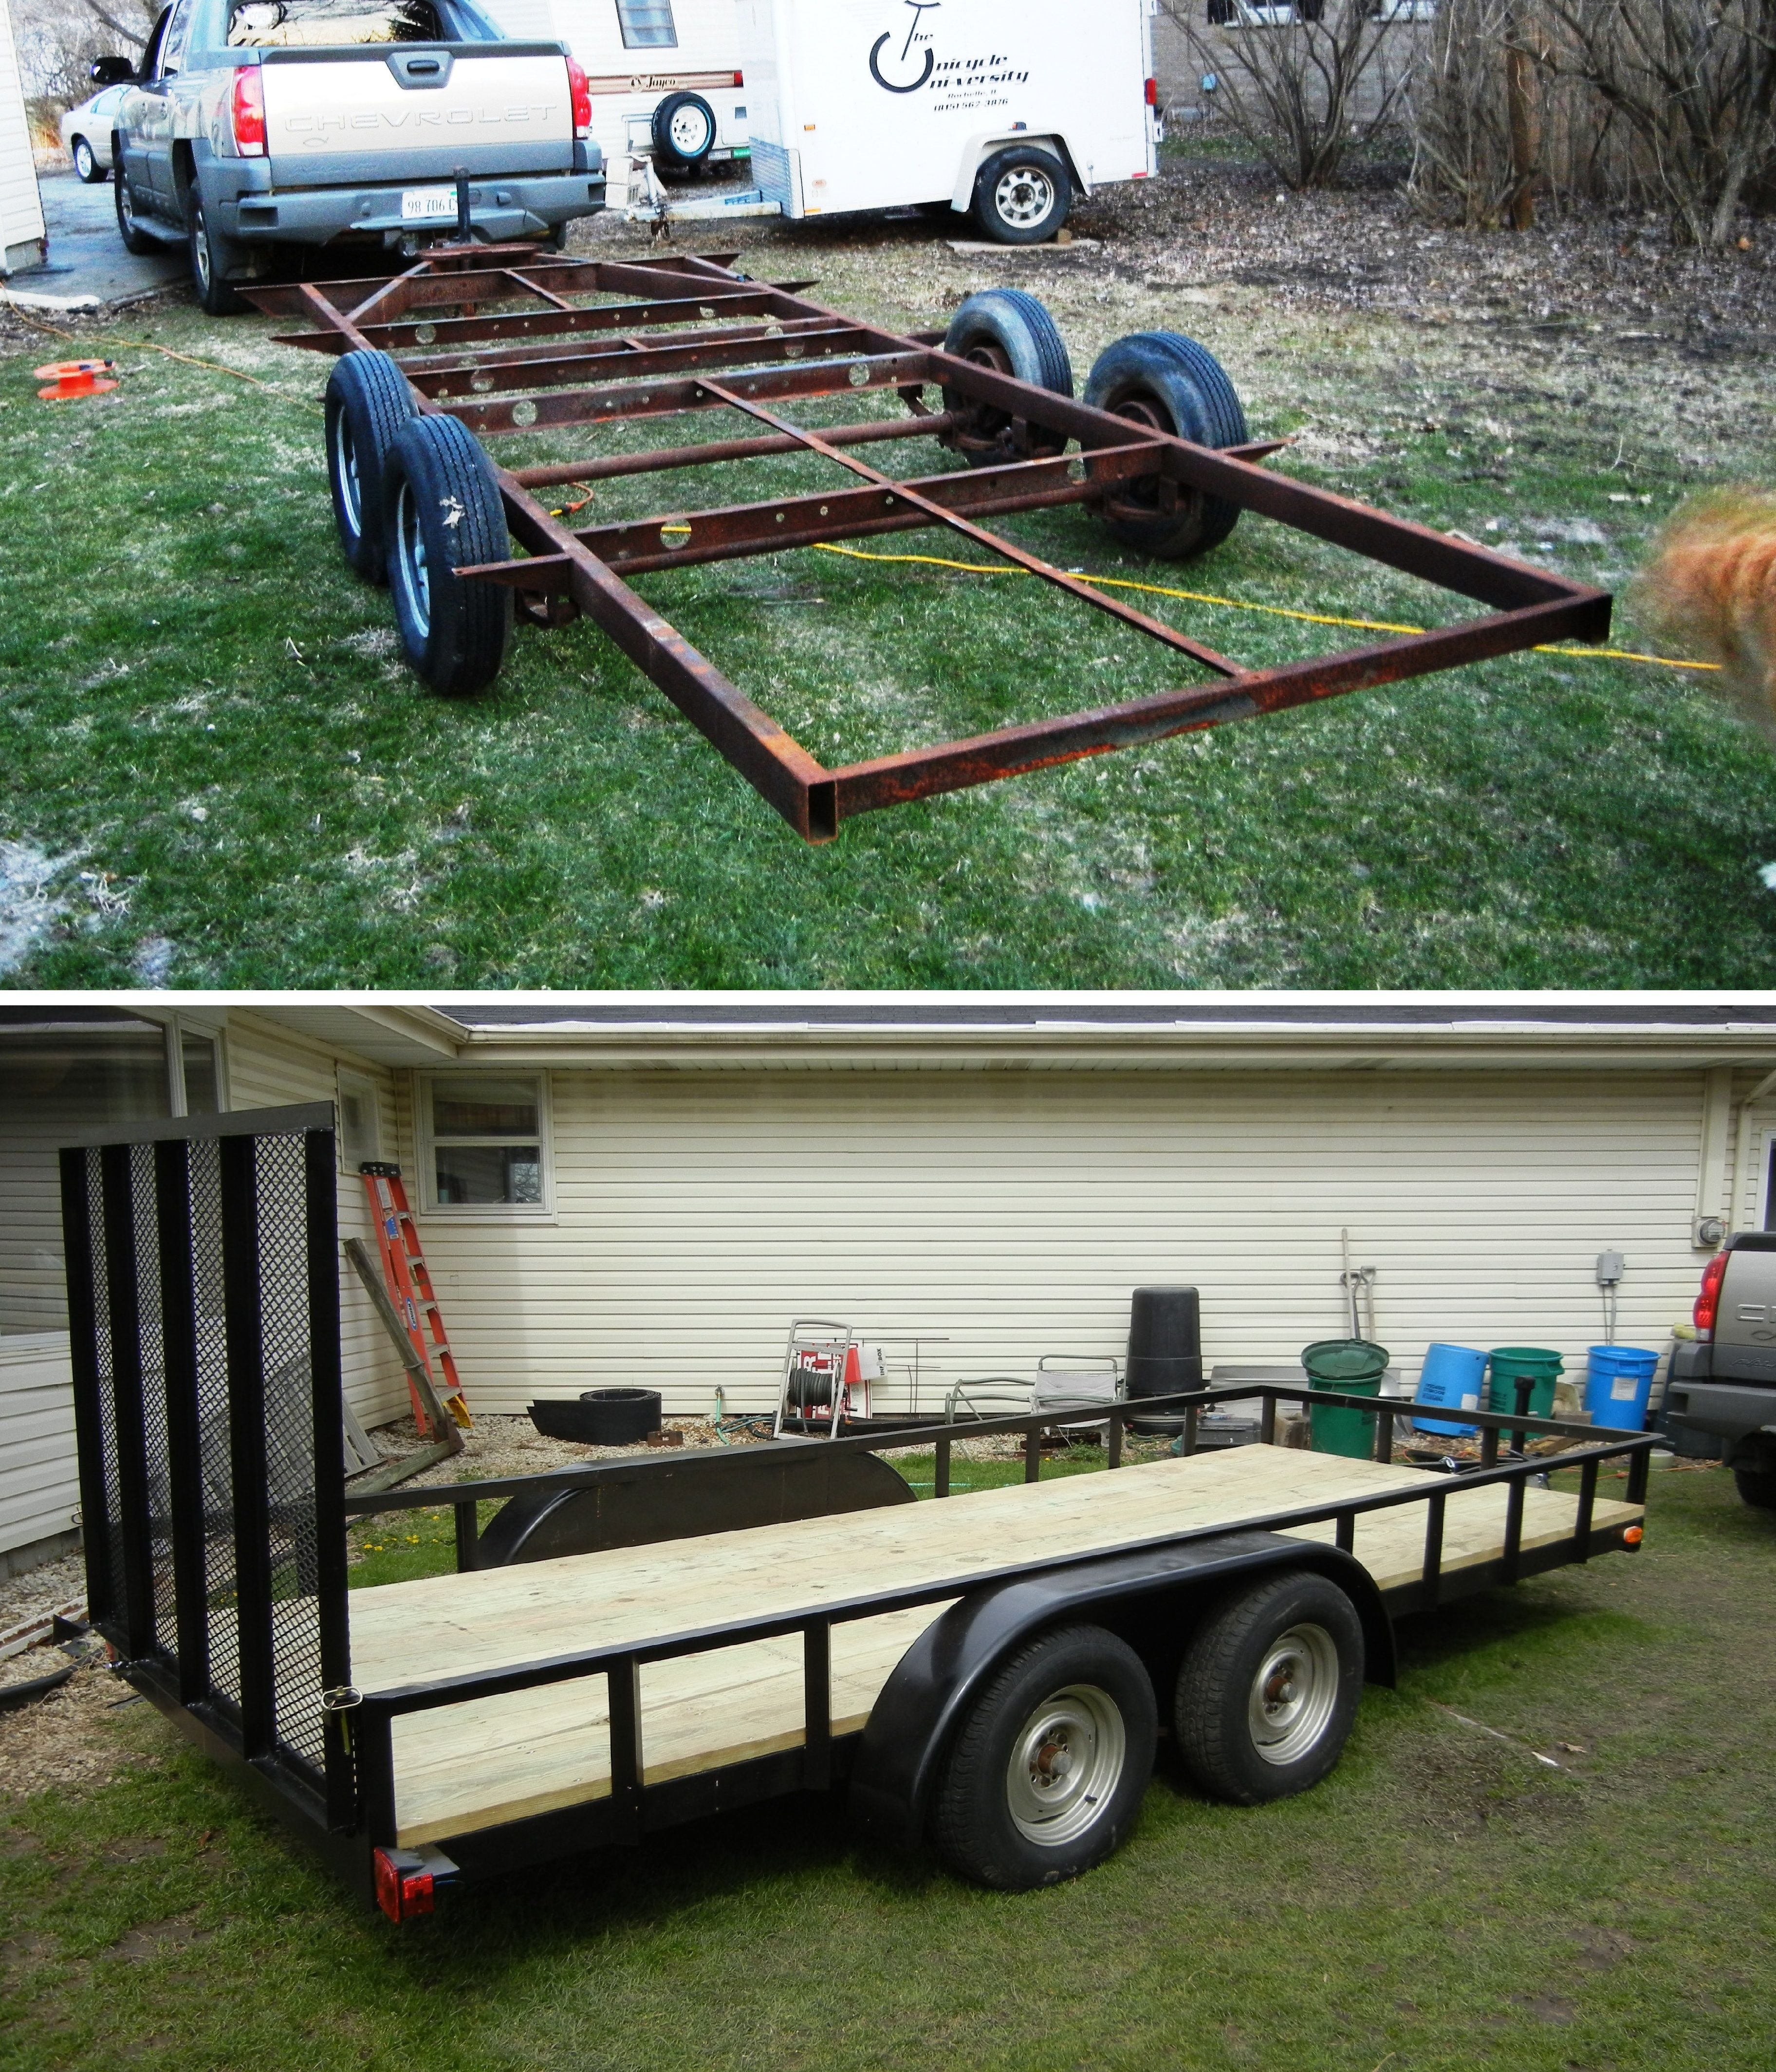 My 16\' tandem axle trailer project. The rough frame was 16\'-5\